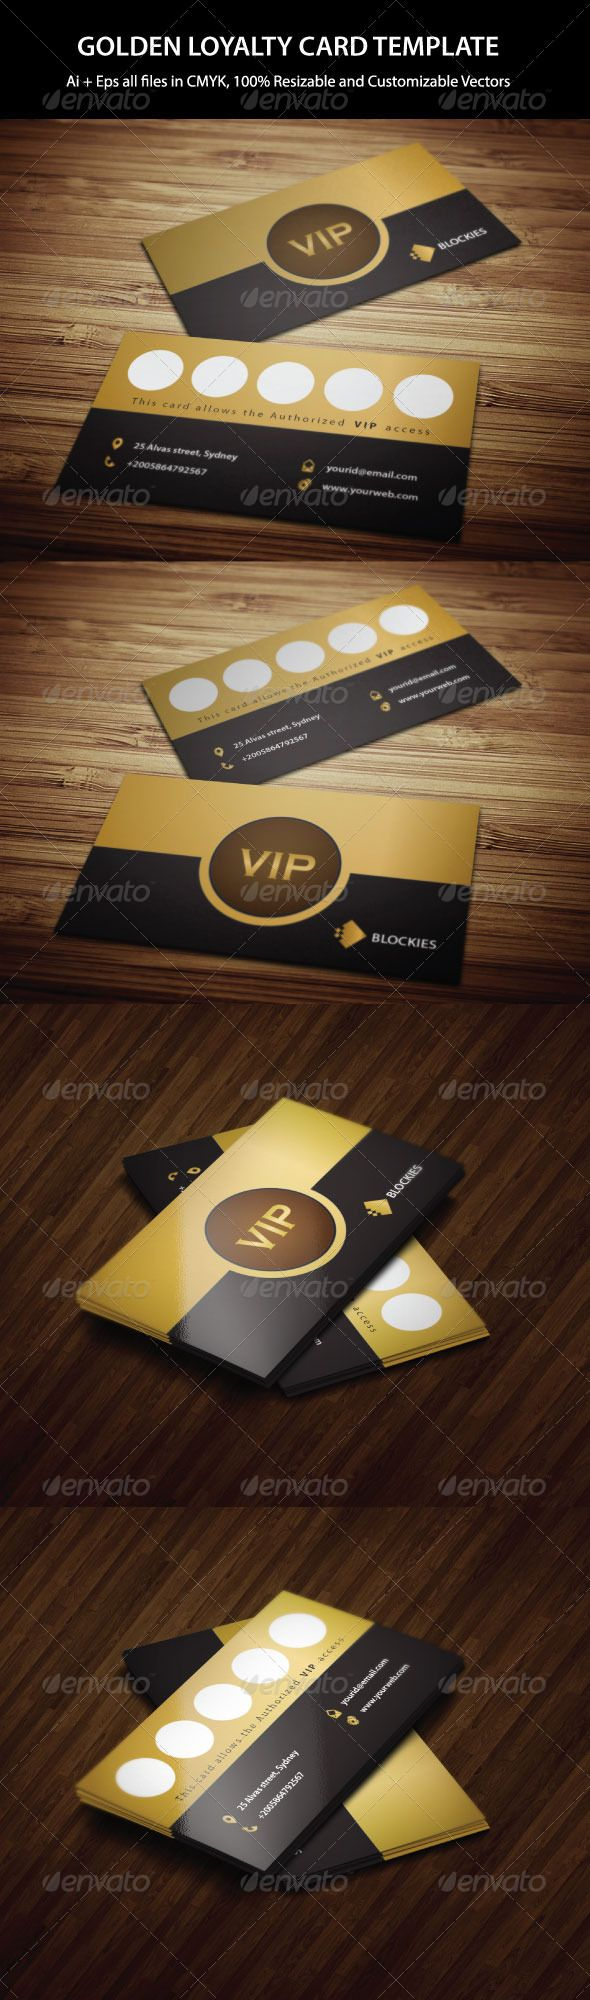 Exclusive Loyalty Card Template #design #printdesign Download: http://graphicriver.net/item/exclusive-loyalty-card-template/6472939?ref=ksioks